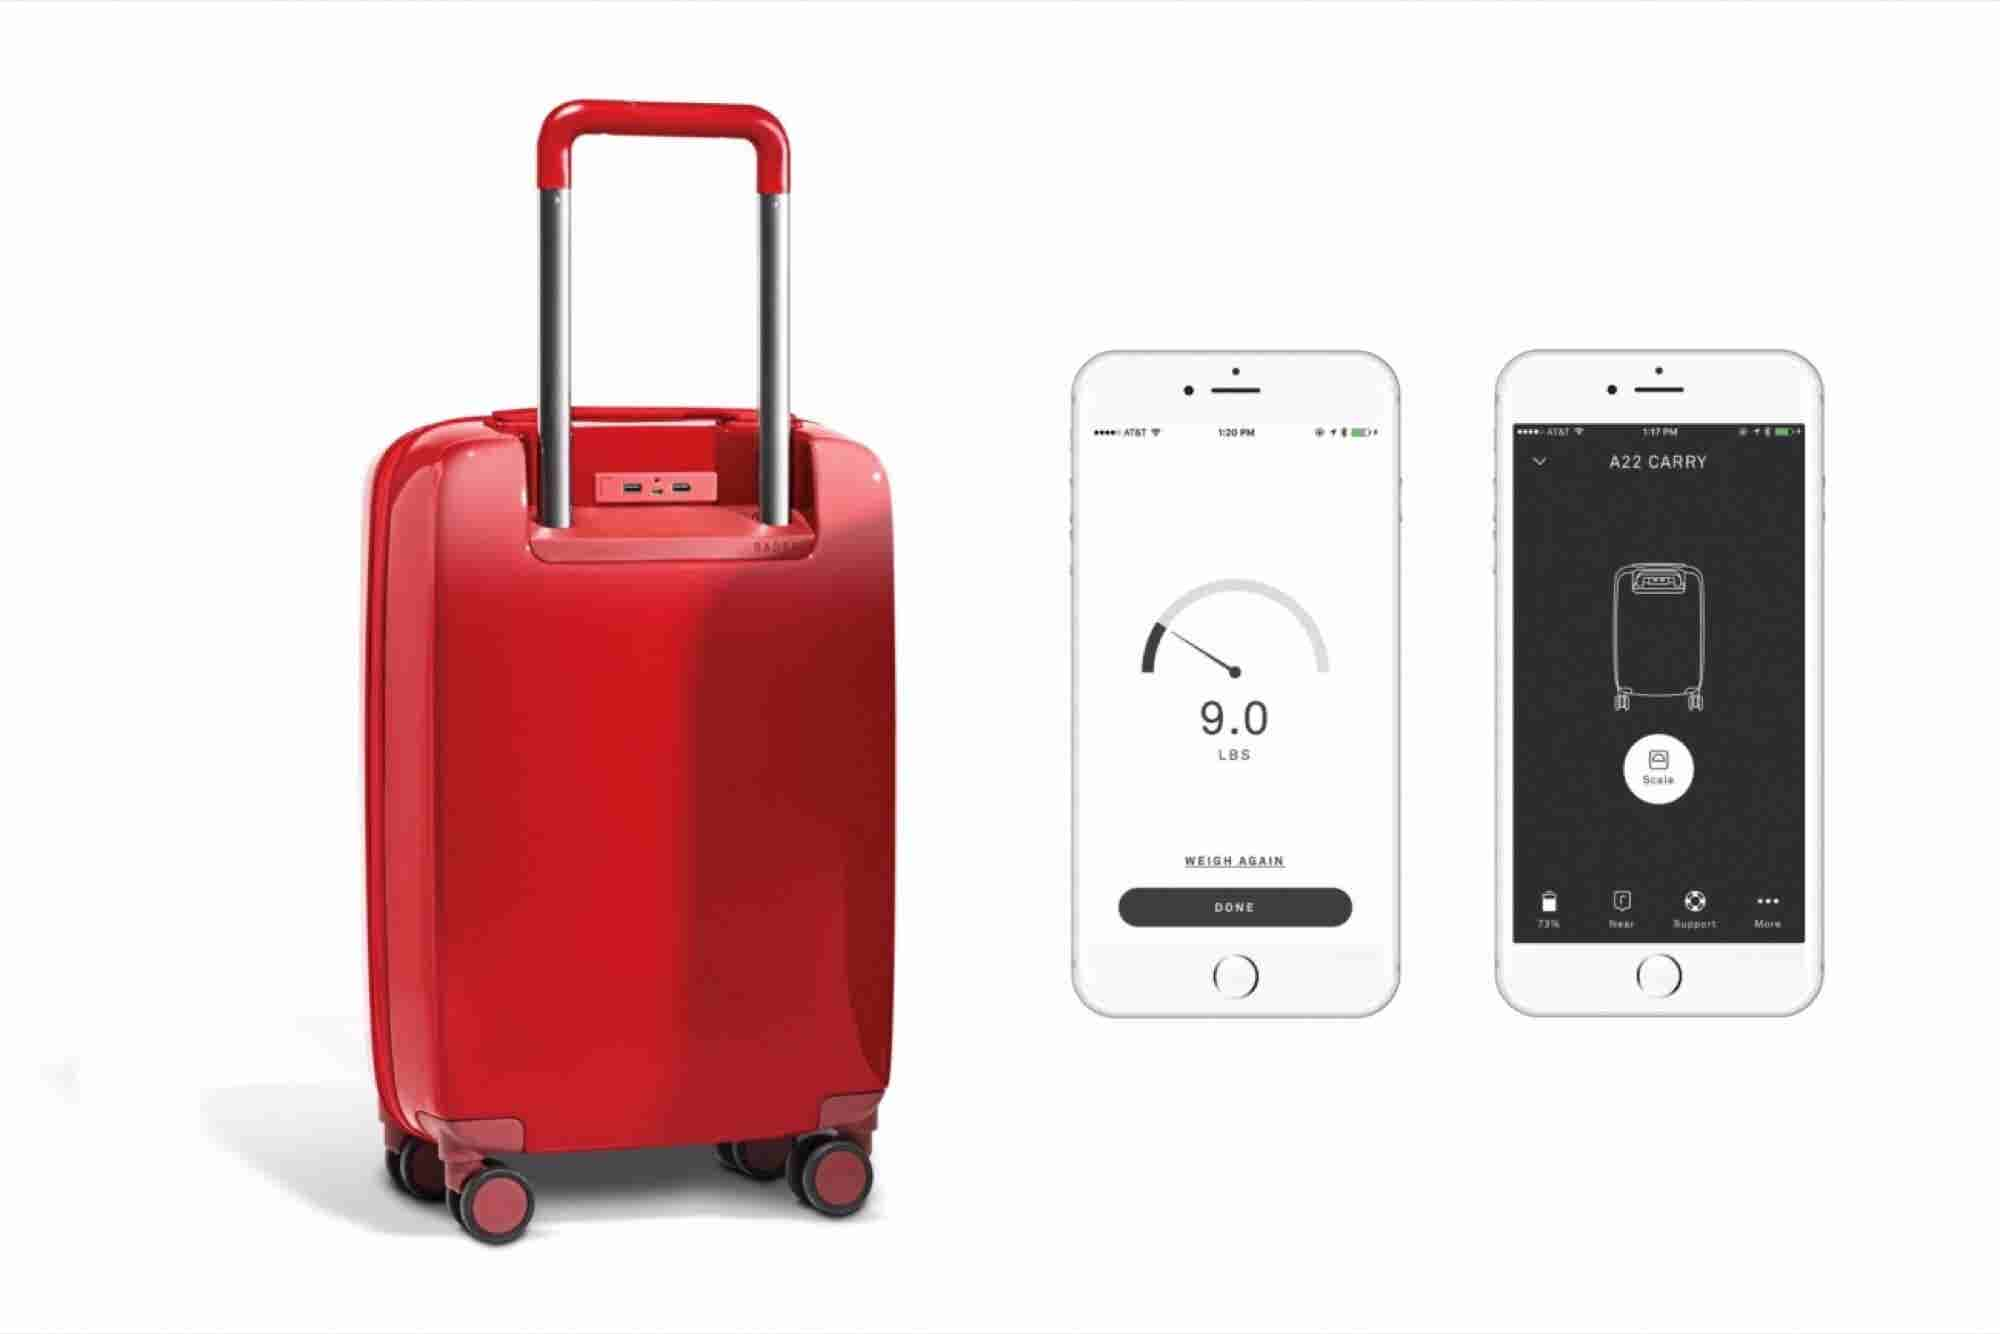 How the Rules of Tech Branding Helped Raden Create a Smart Suitcase